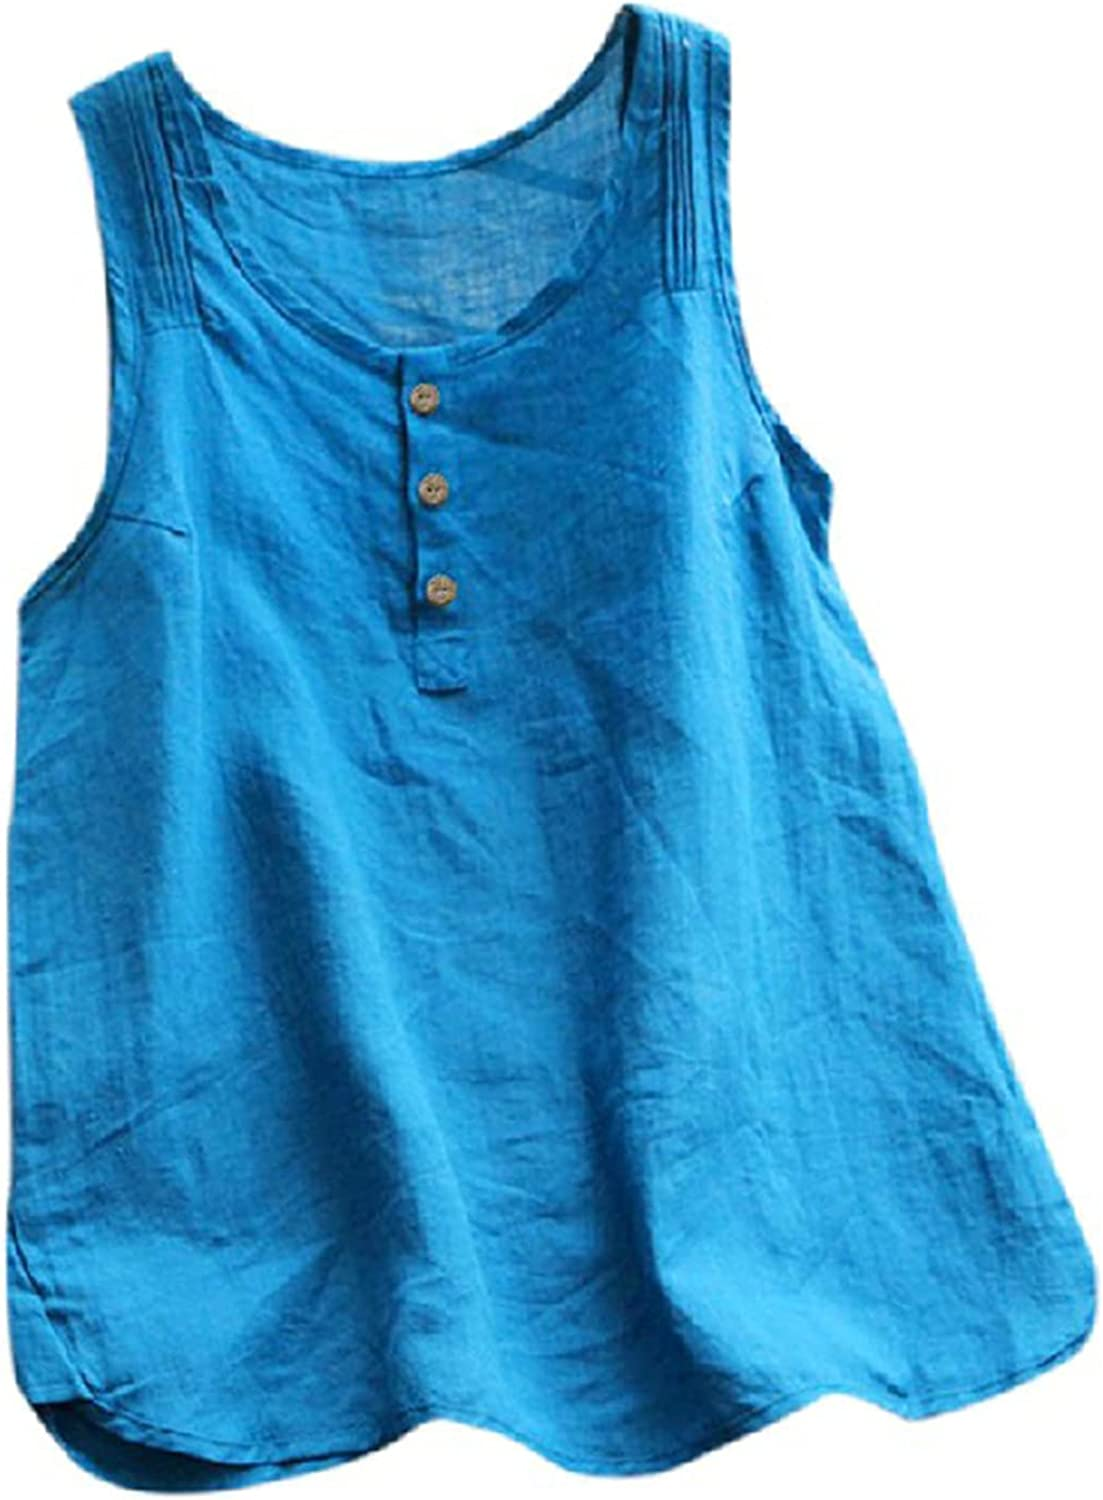 Womens Tank Tops Loose Fit Cotton Linen Button Up Plain T Shirts Solid Color Flowy Summer Tank Tops Sleeveless Vest